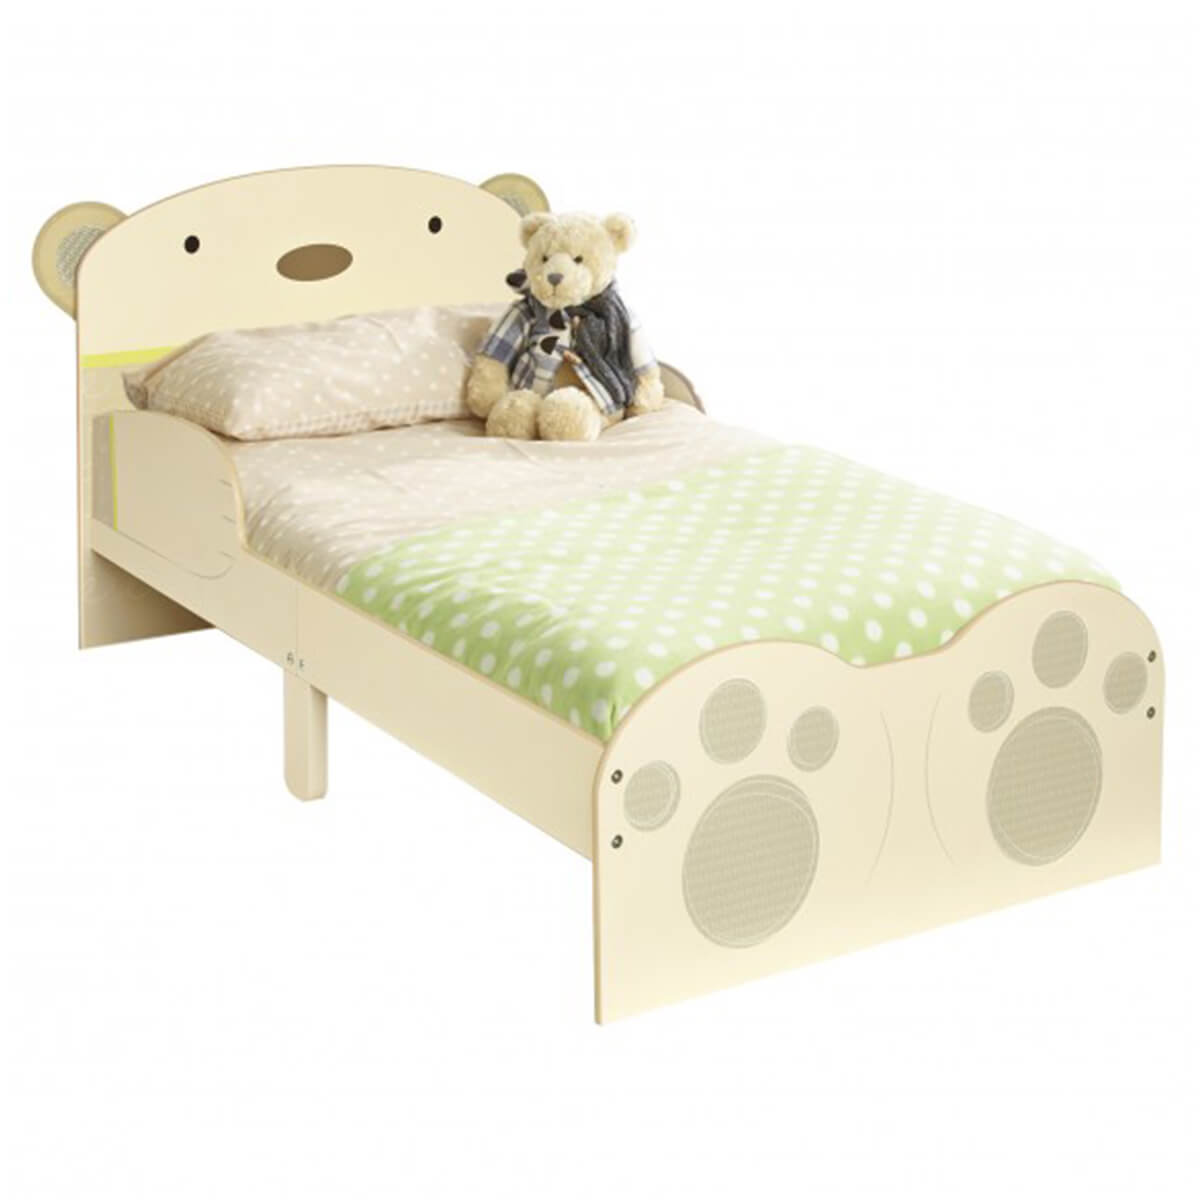 BabyBear Single Toddler Bed